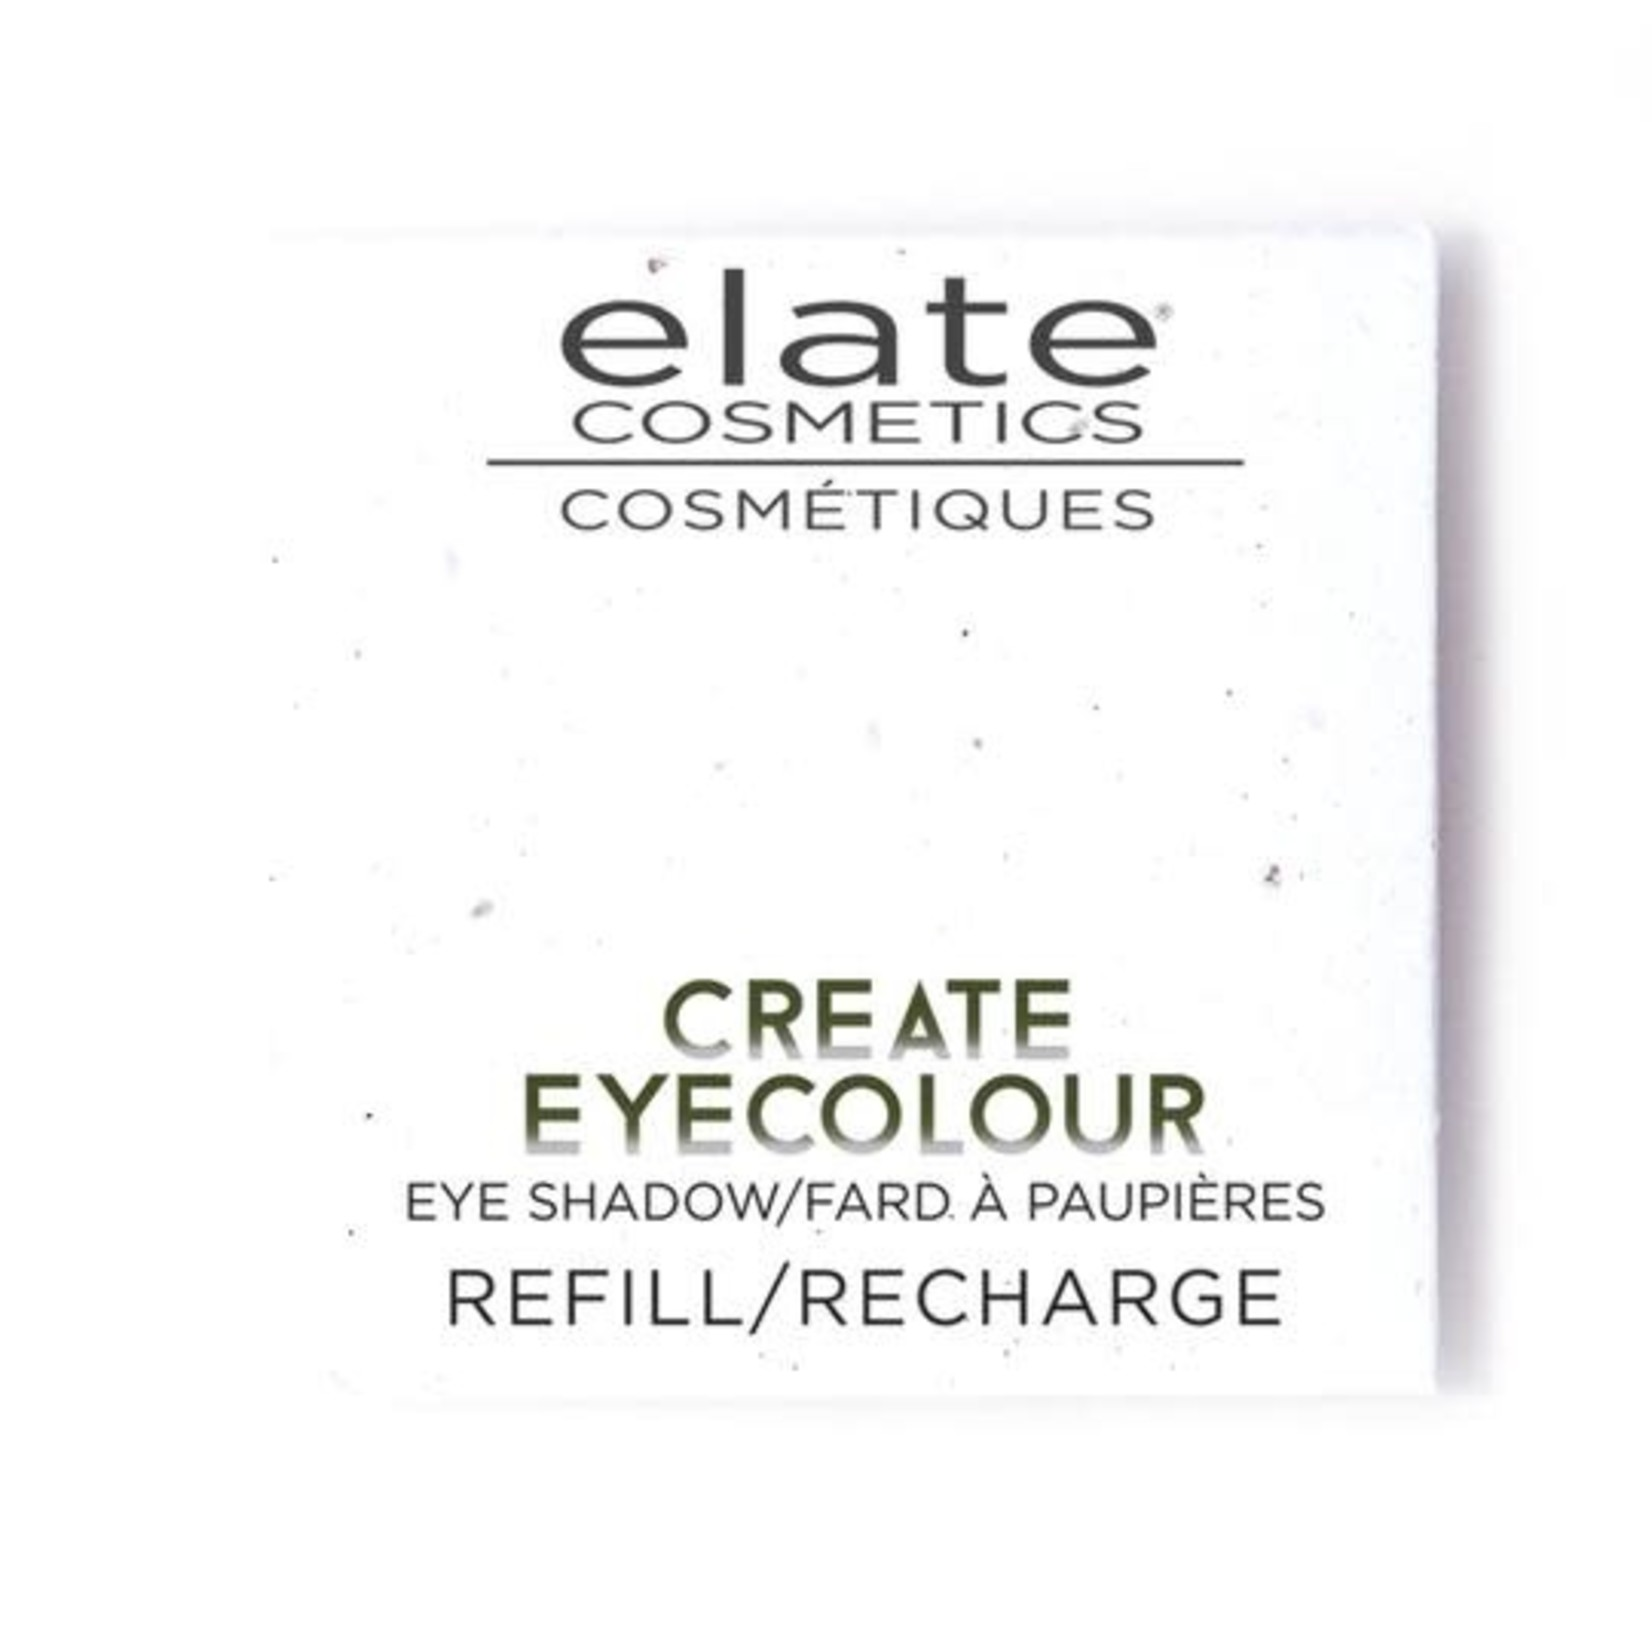 ELATE COSMETICS PRESSED EYECOLOUR - GIFTED